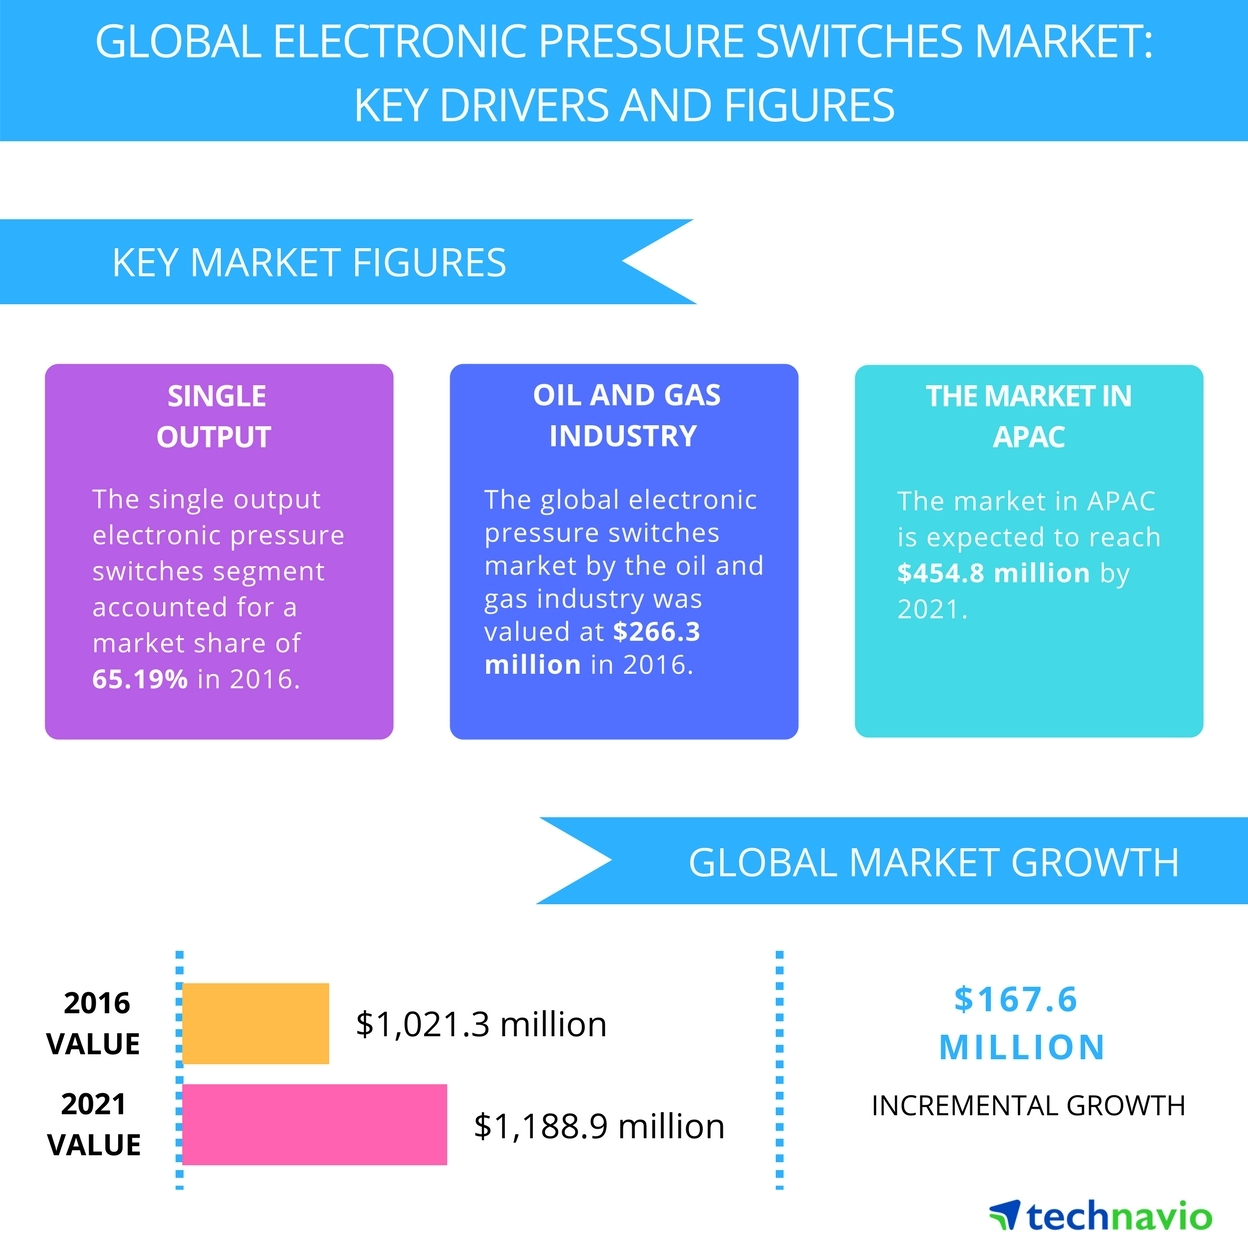 Technavio has published a new report on the global electronic pressure switches market from 2017-2021. (Graphic: Business Wire)